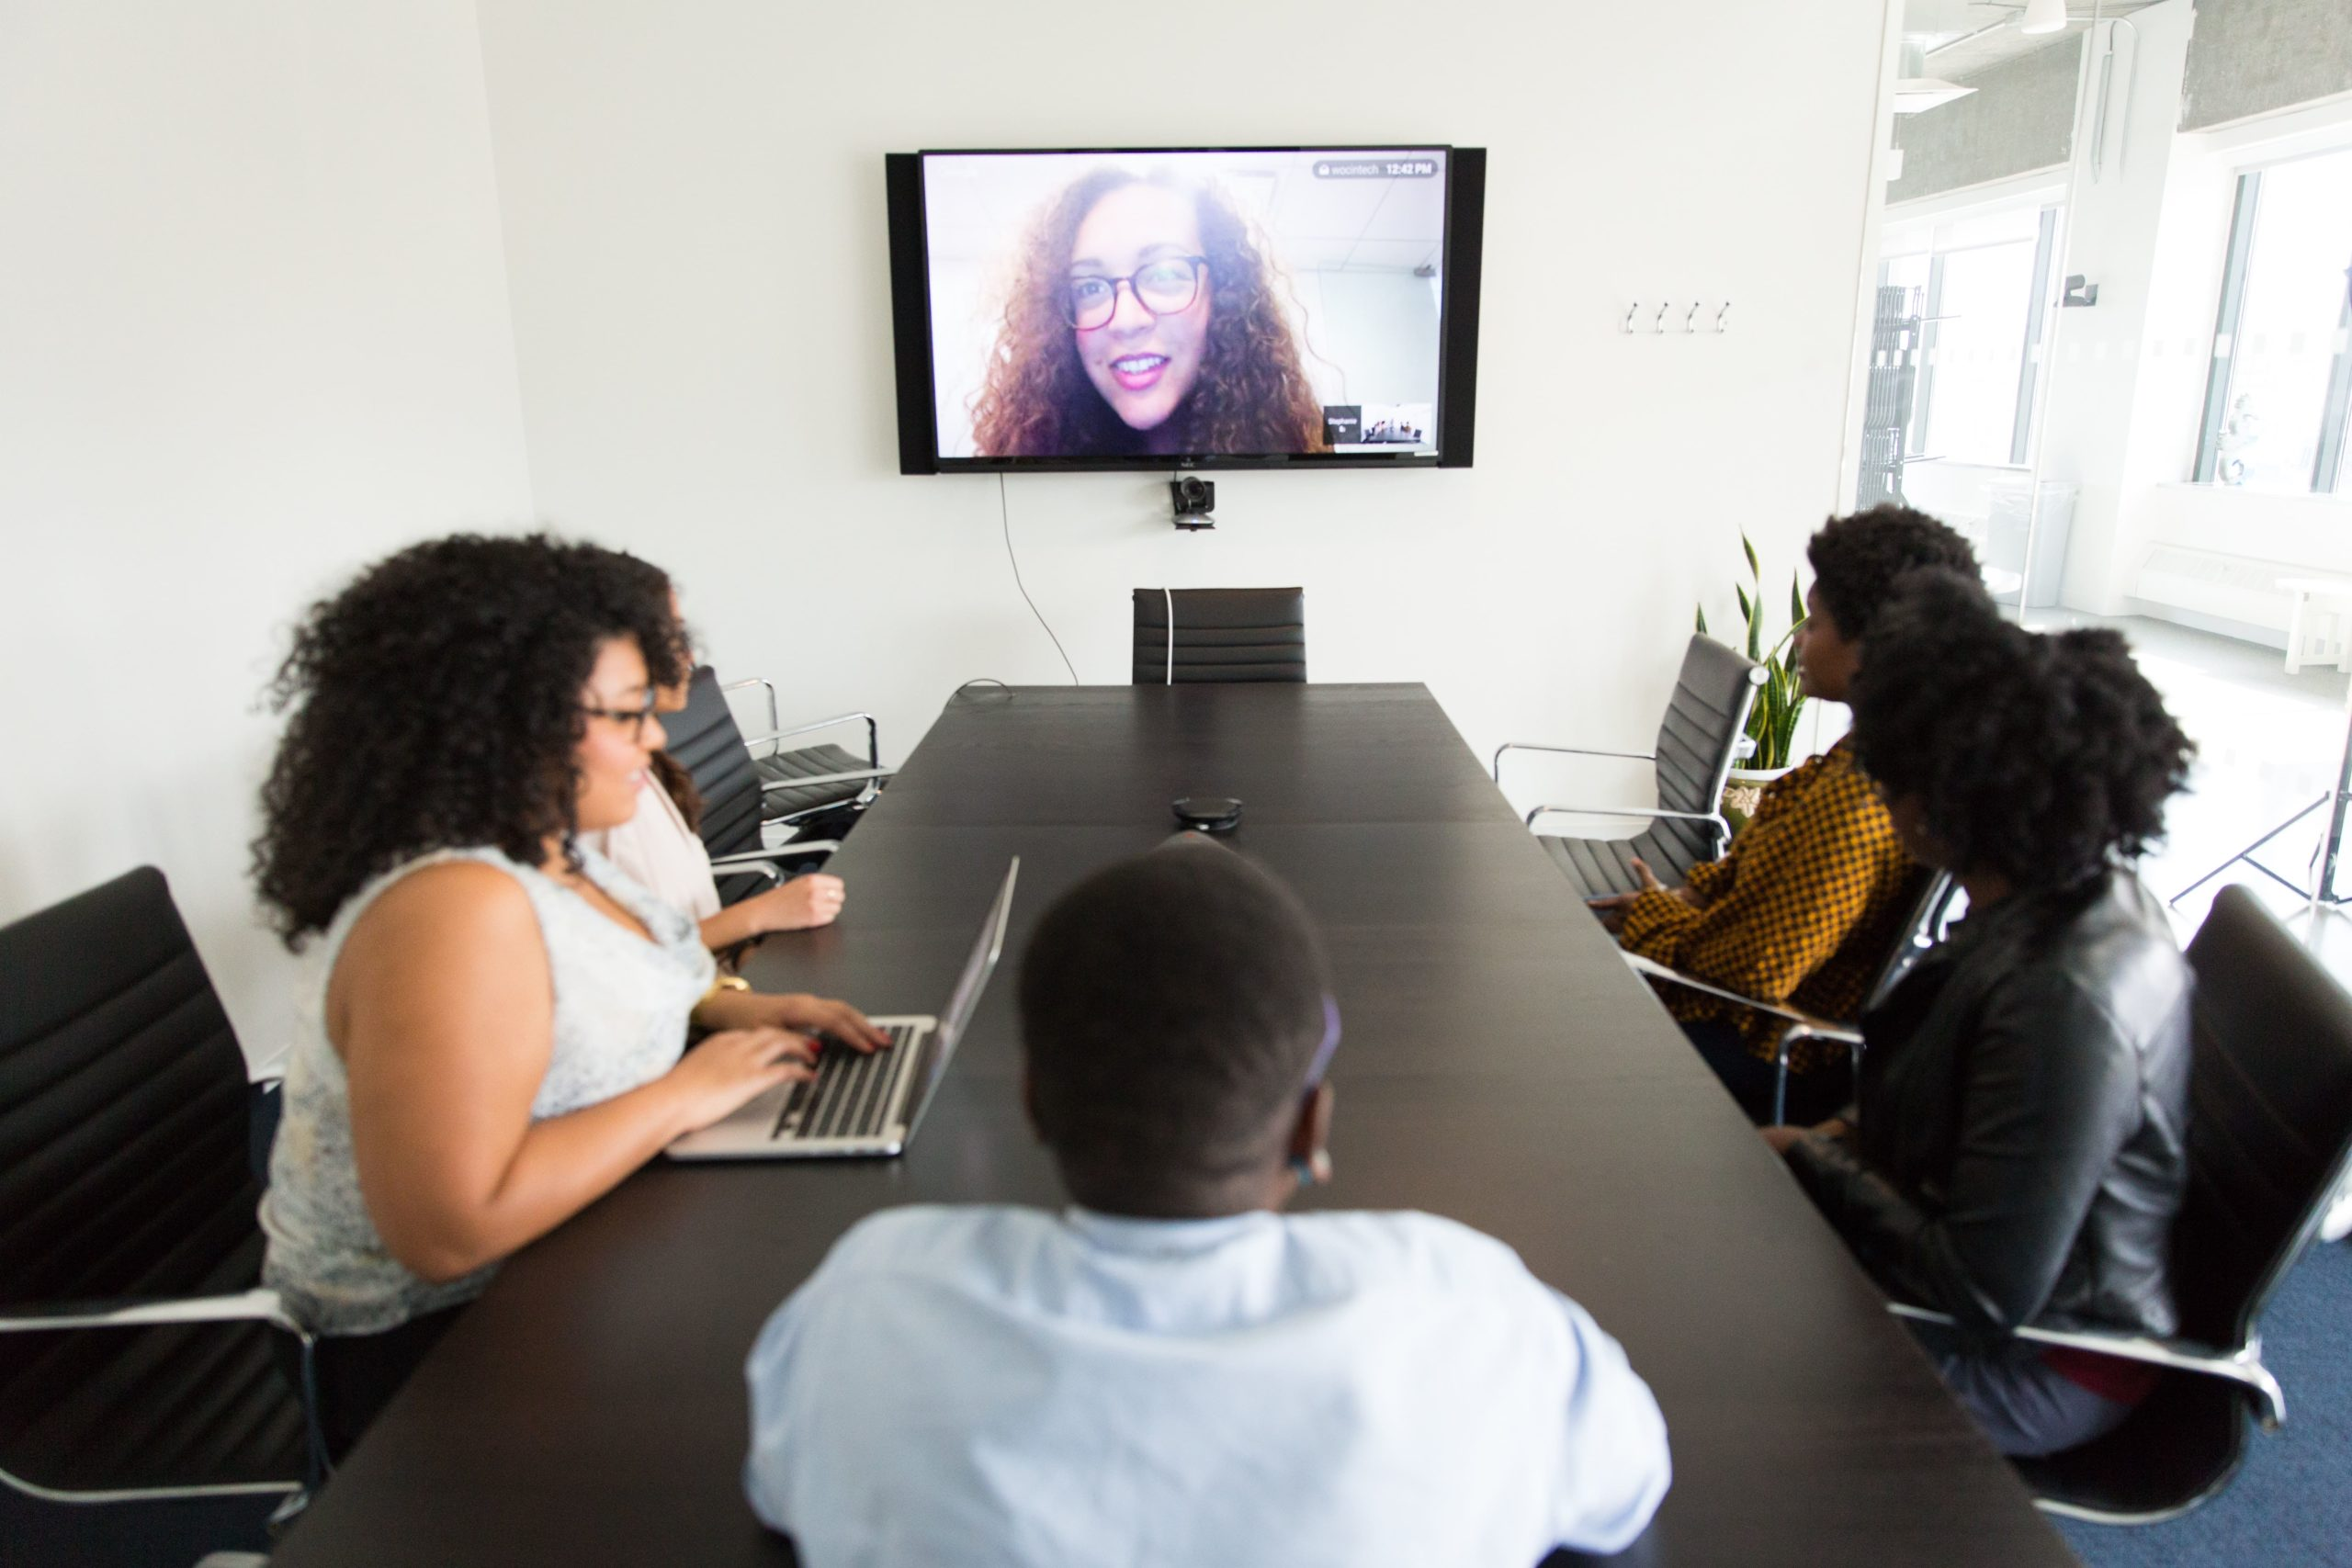 women-sitting-conference-table-videoconference-flatscreen-television